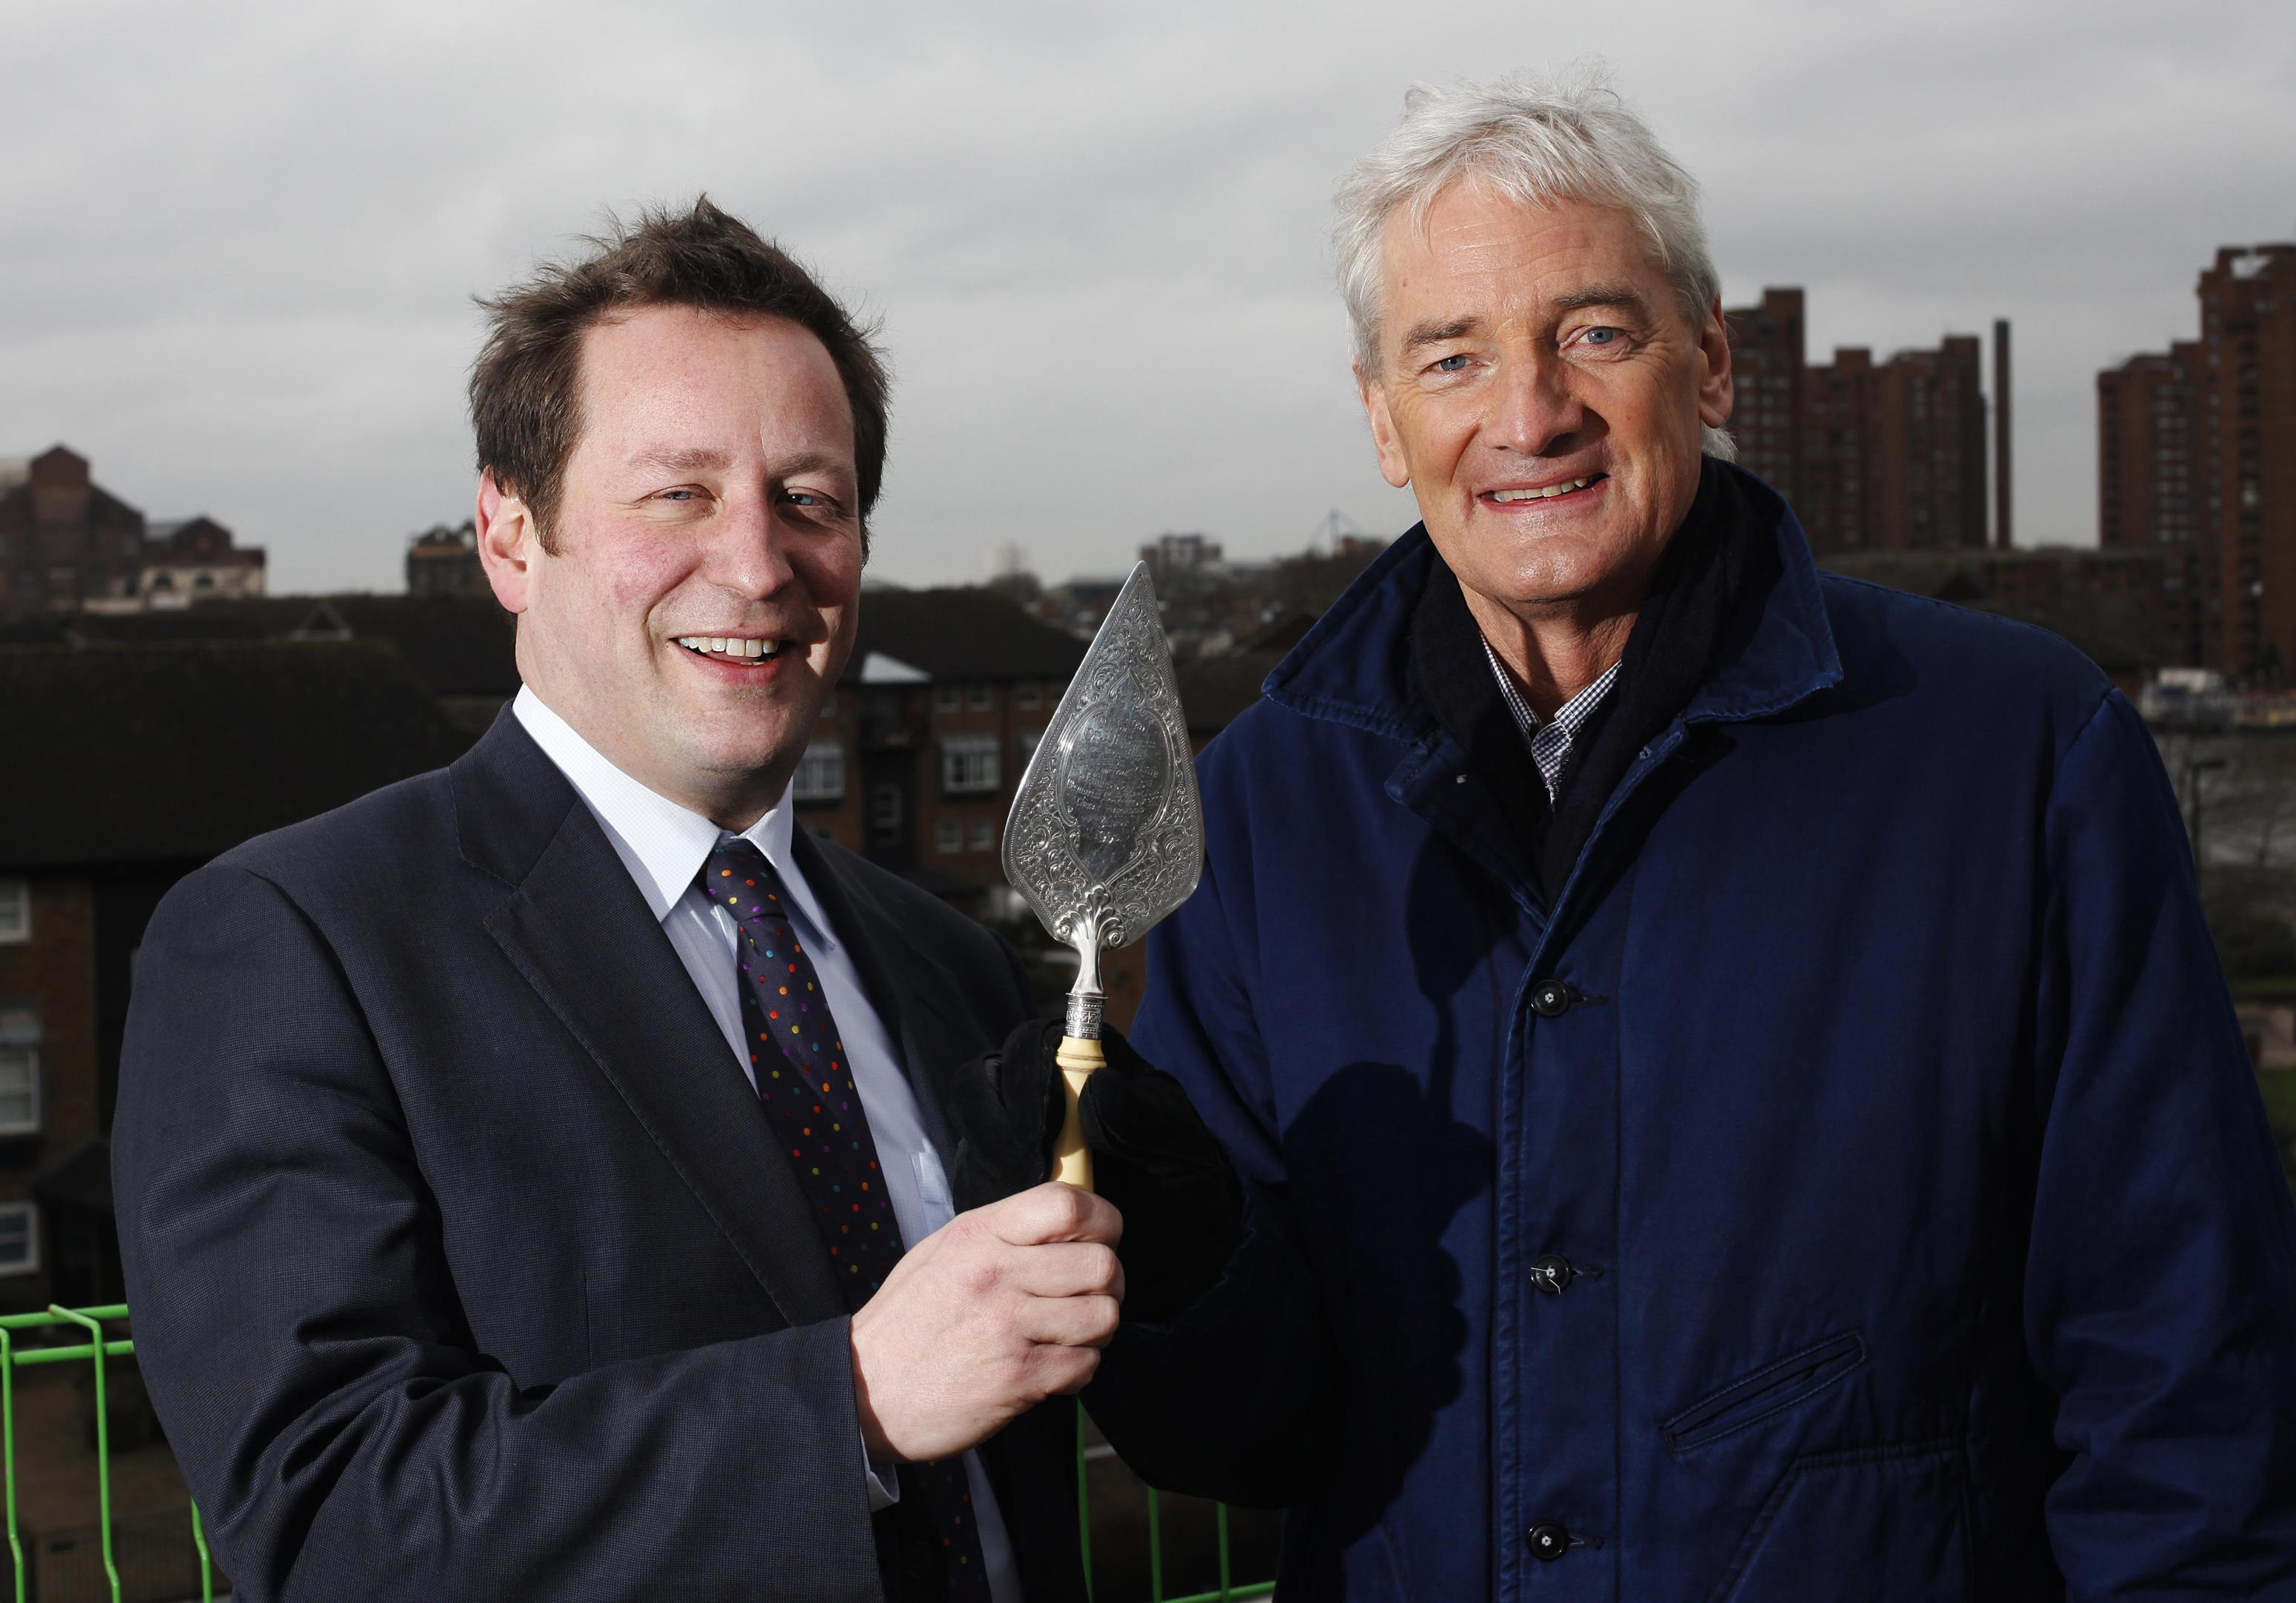 James Dyson and Ed Vaizey MP, Minister with responsibility for Communication, Culture and the Creative Industries, at the top of the Royal College of Arts new building in Battersea for the topping out ceremony.